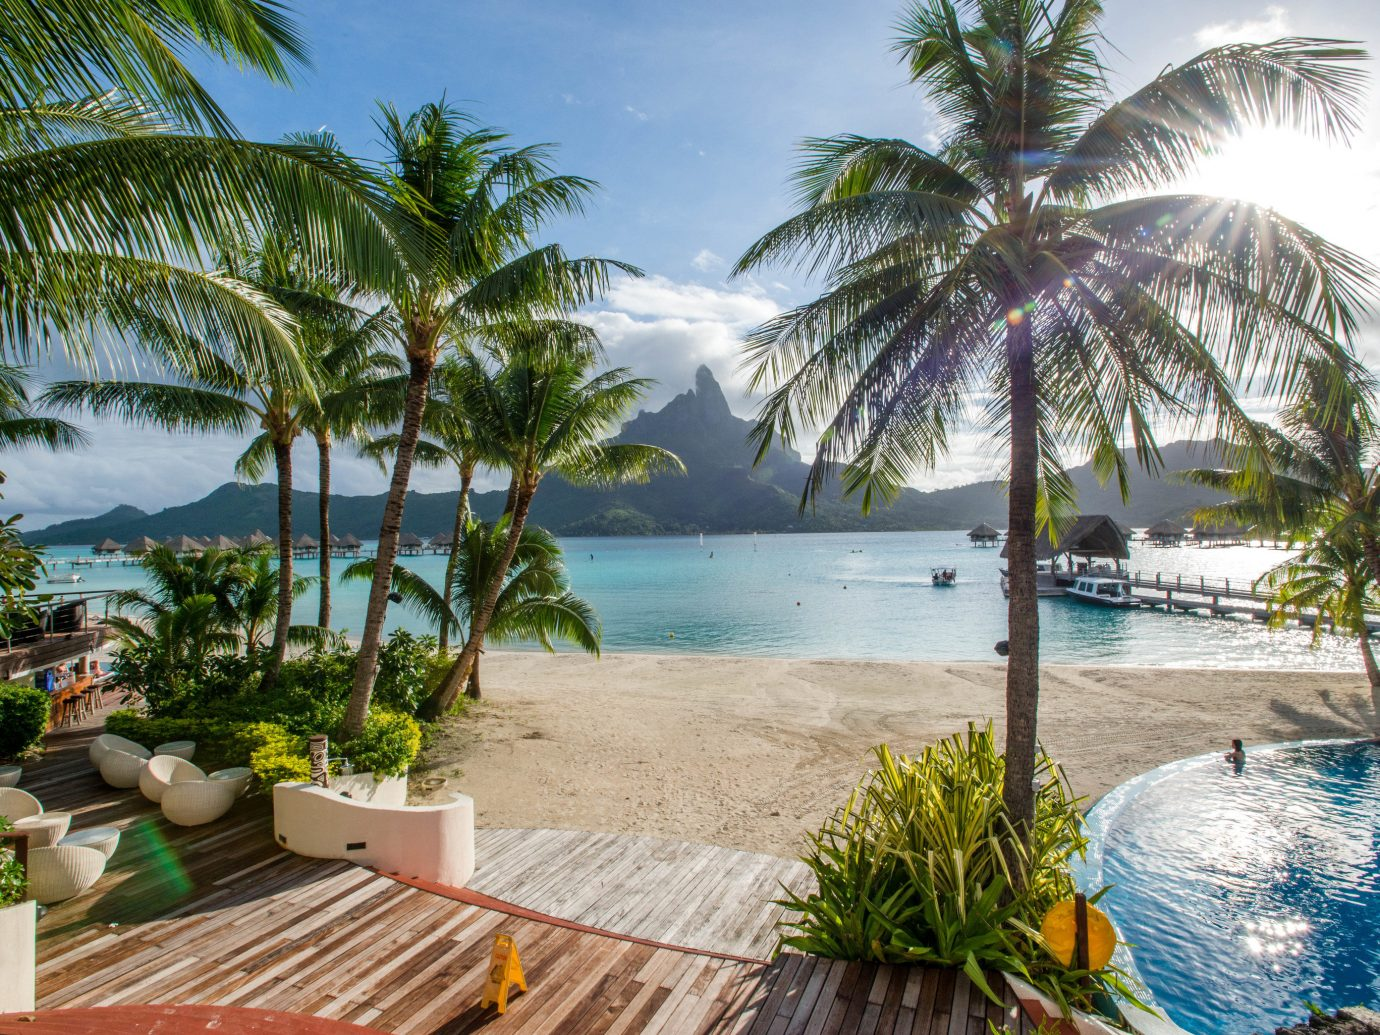 Hotels Trip Ideas tree outdoor palm sky water Beach Resort swimming pool leisure property caribbean vacation Pool plant arecales tropics palm family estate real estate Sea Lagoon bay lined shade Garden sandy shore